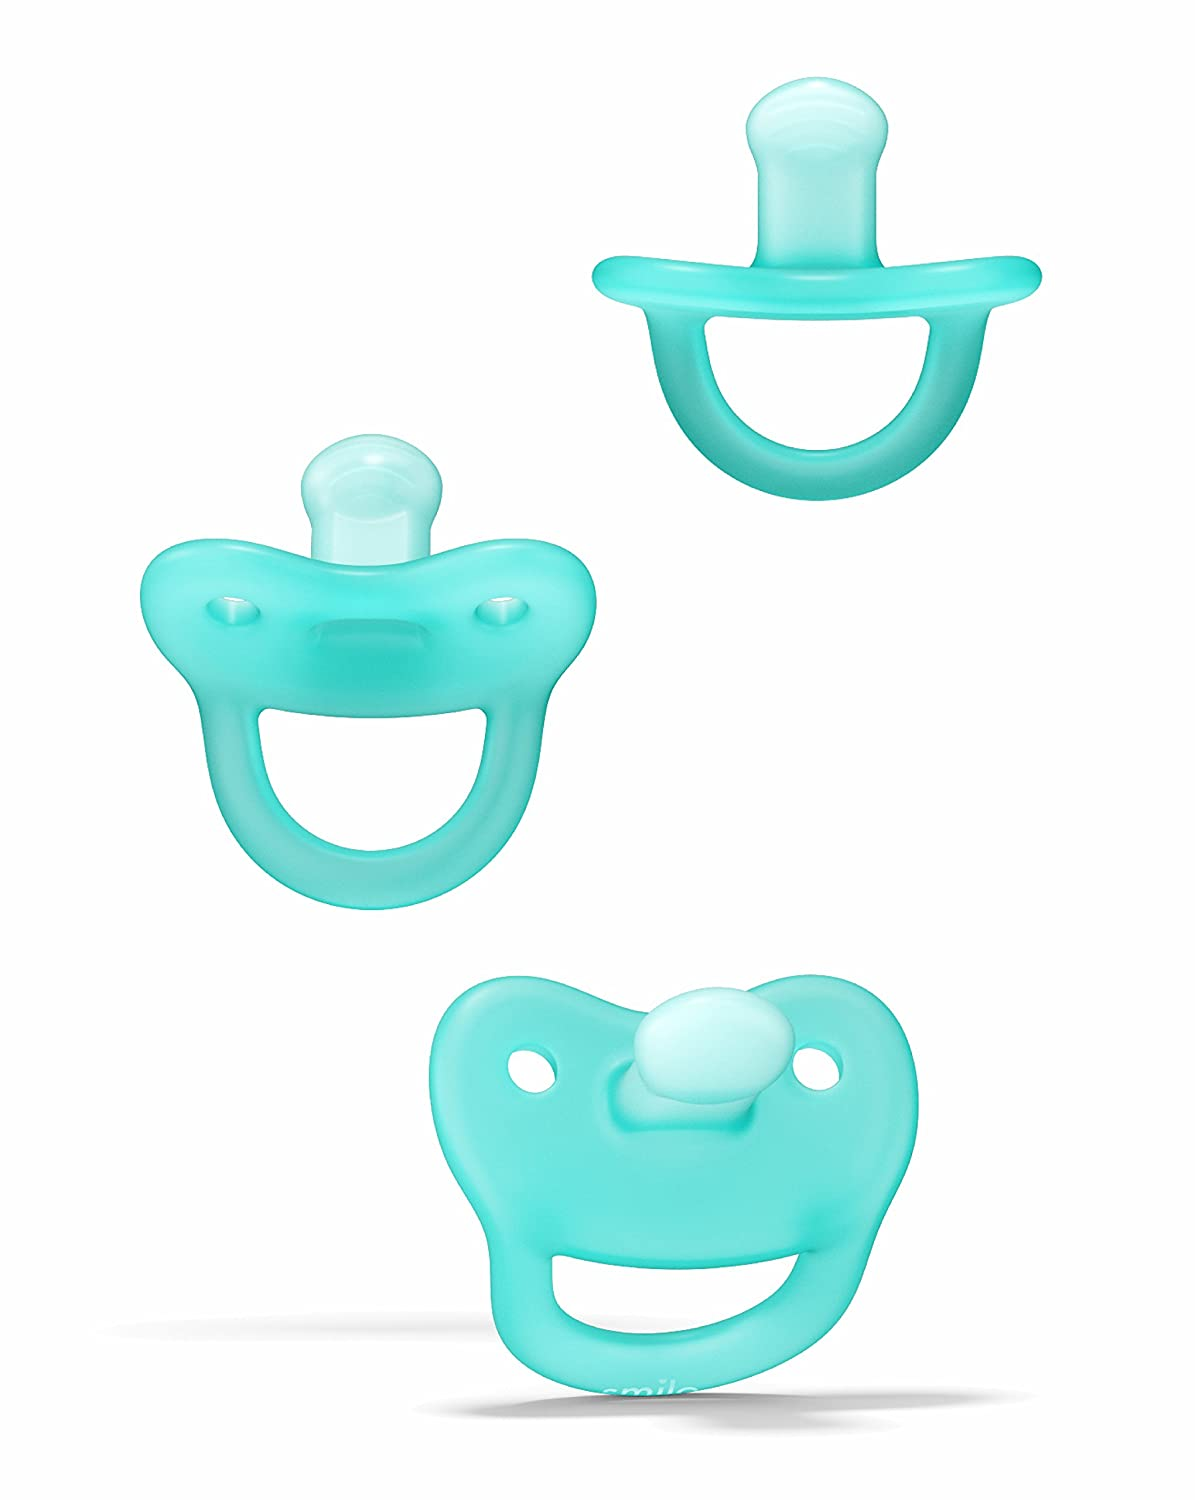 Smilo Newborn Orthodontic Pacifier, BPA Free 0-2 Months, 3-Count